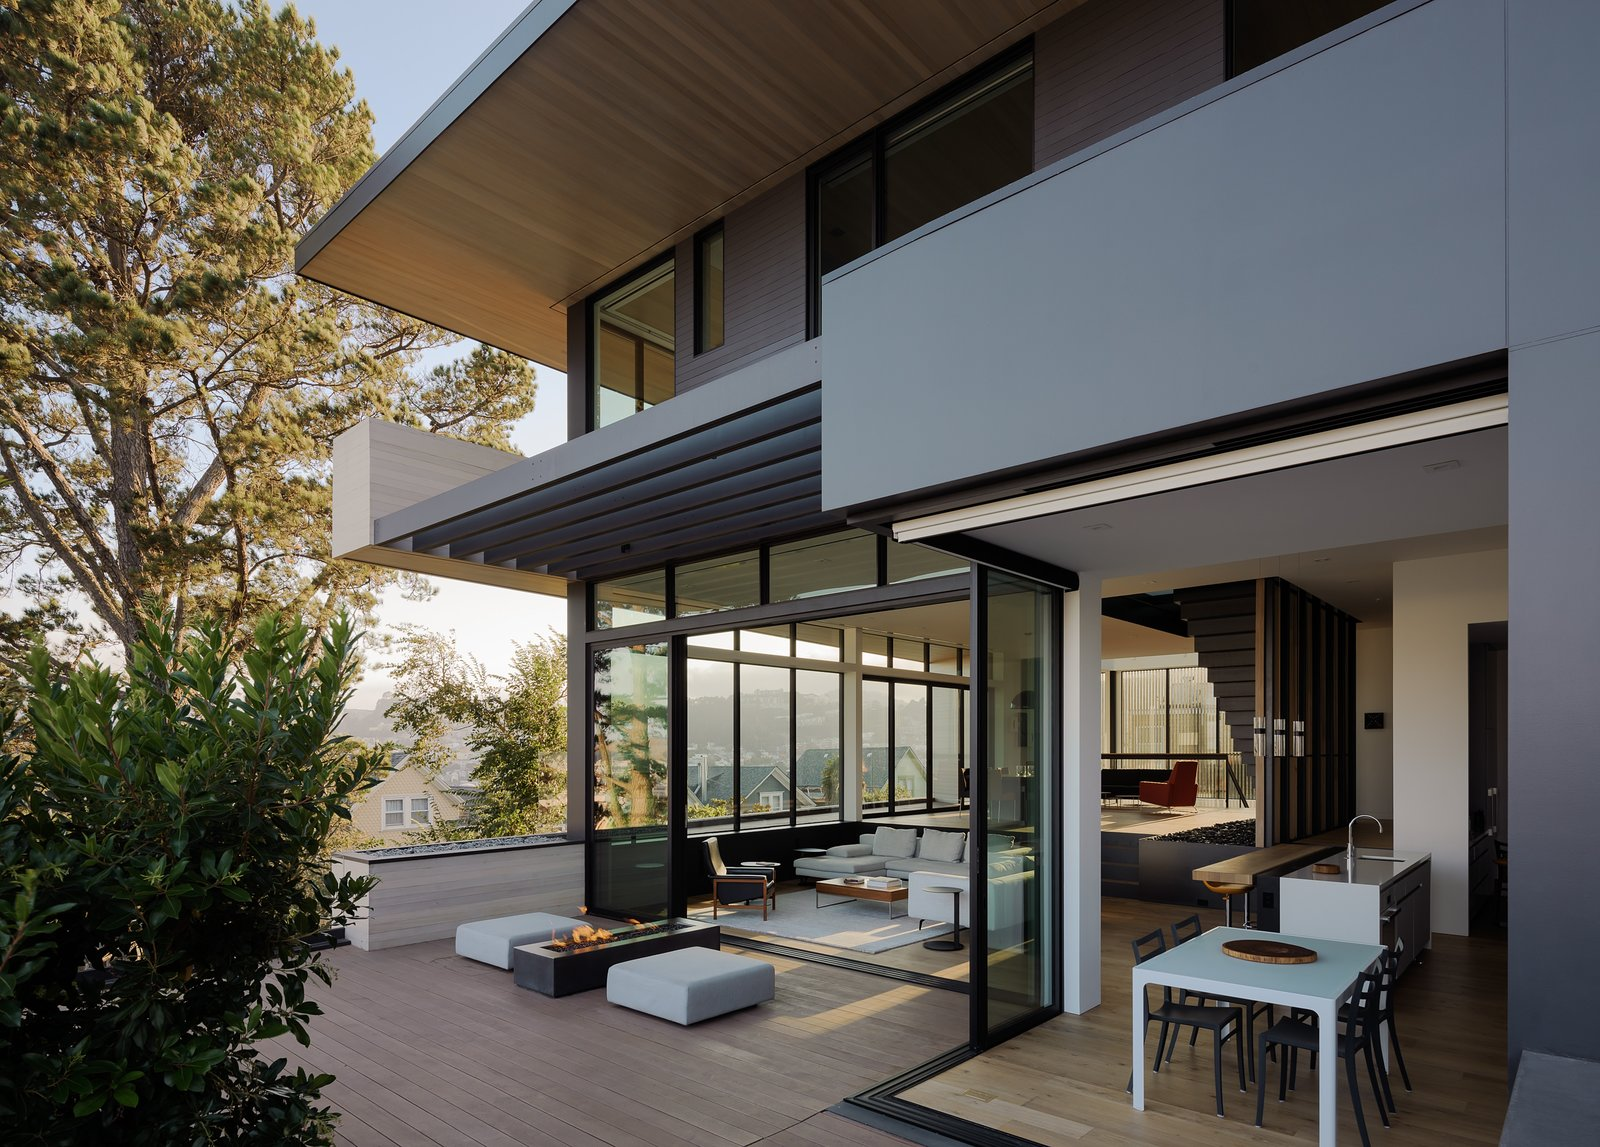 Outdoor, Concrete Patio, Porch, Deck, Shrubs, Hardscapes, Trees, Metal Patio, Porch, Deck, Wood Patio, Porch, Deck, Walkways, Side Yard, and Large Patio, Porch, Deck Exterior into Kitchen and Living Room   Dolores Heights Residence I by John Maniscalco Architecture